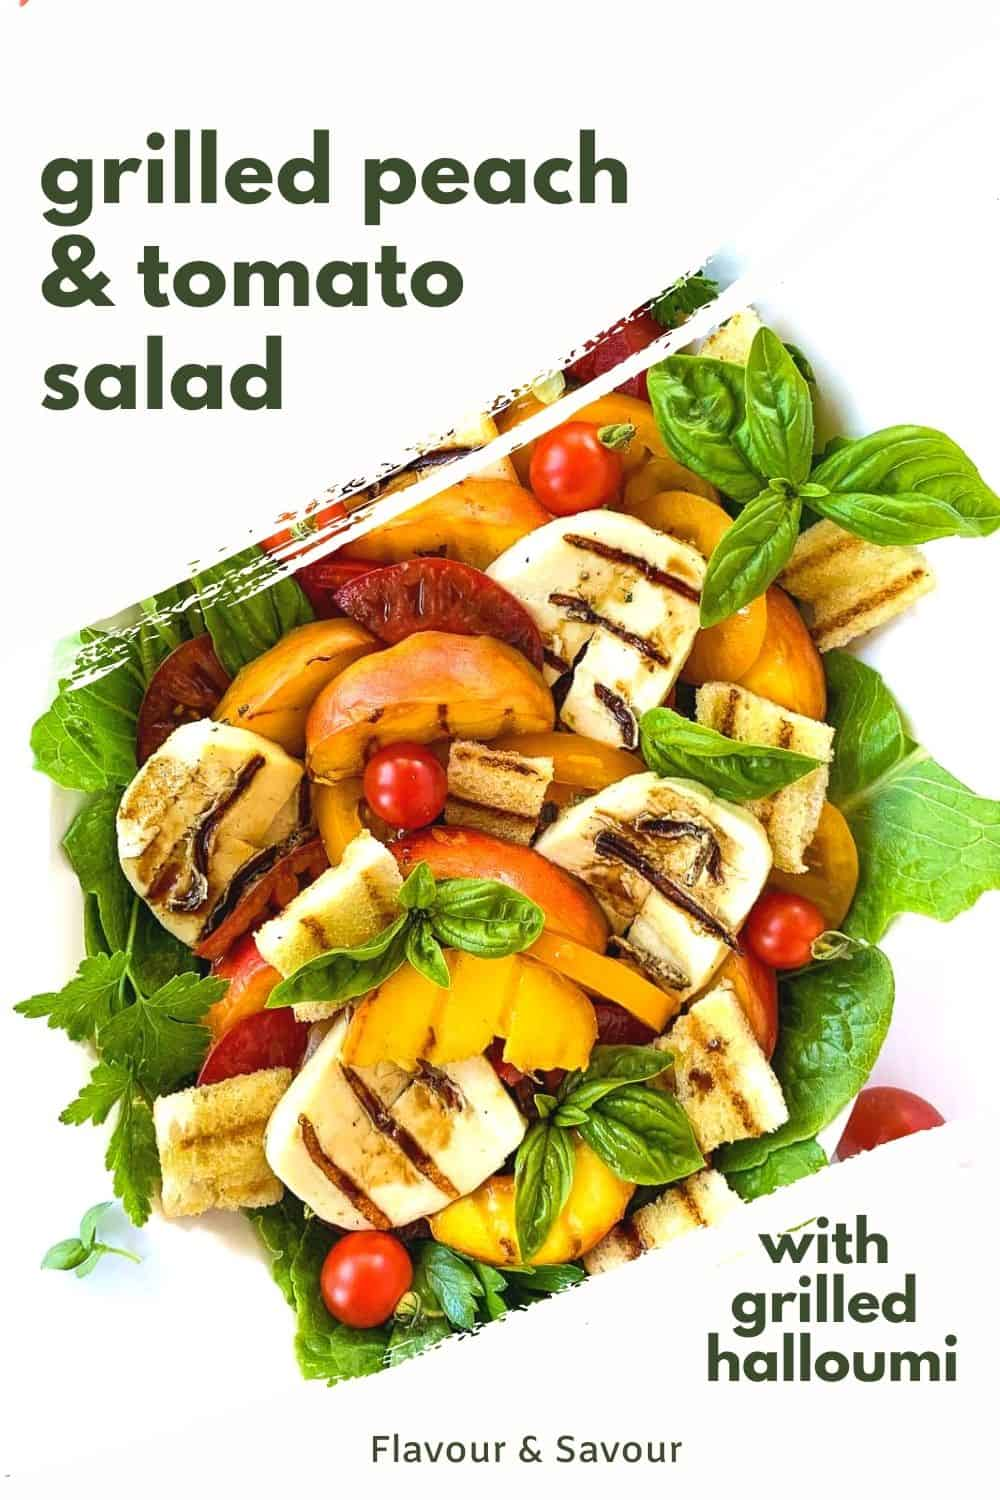 Graphic for Grilled Peach and Tomato Salad with grilled halloumi